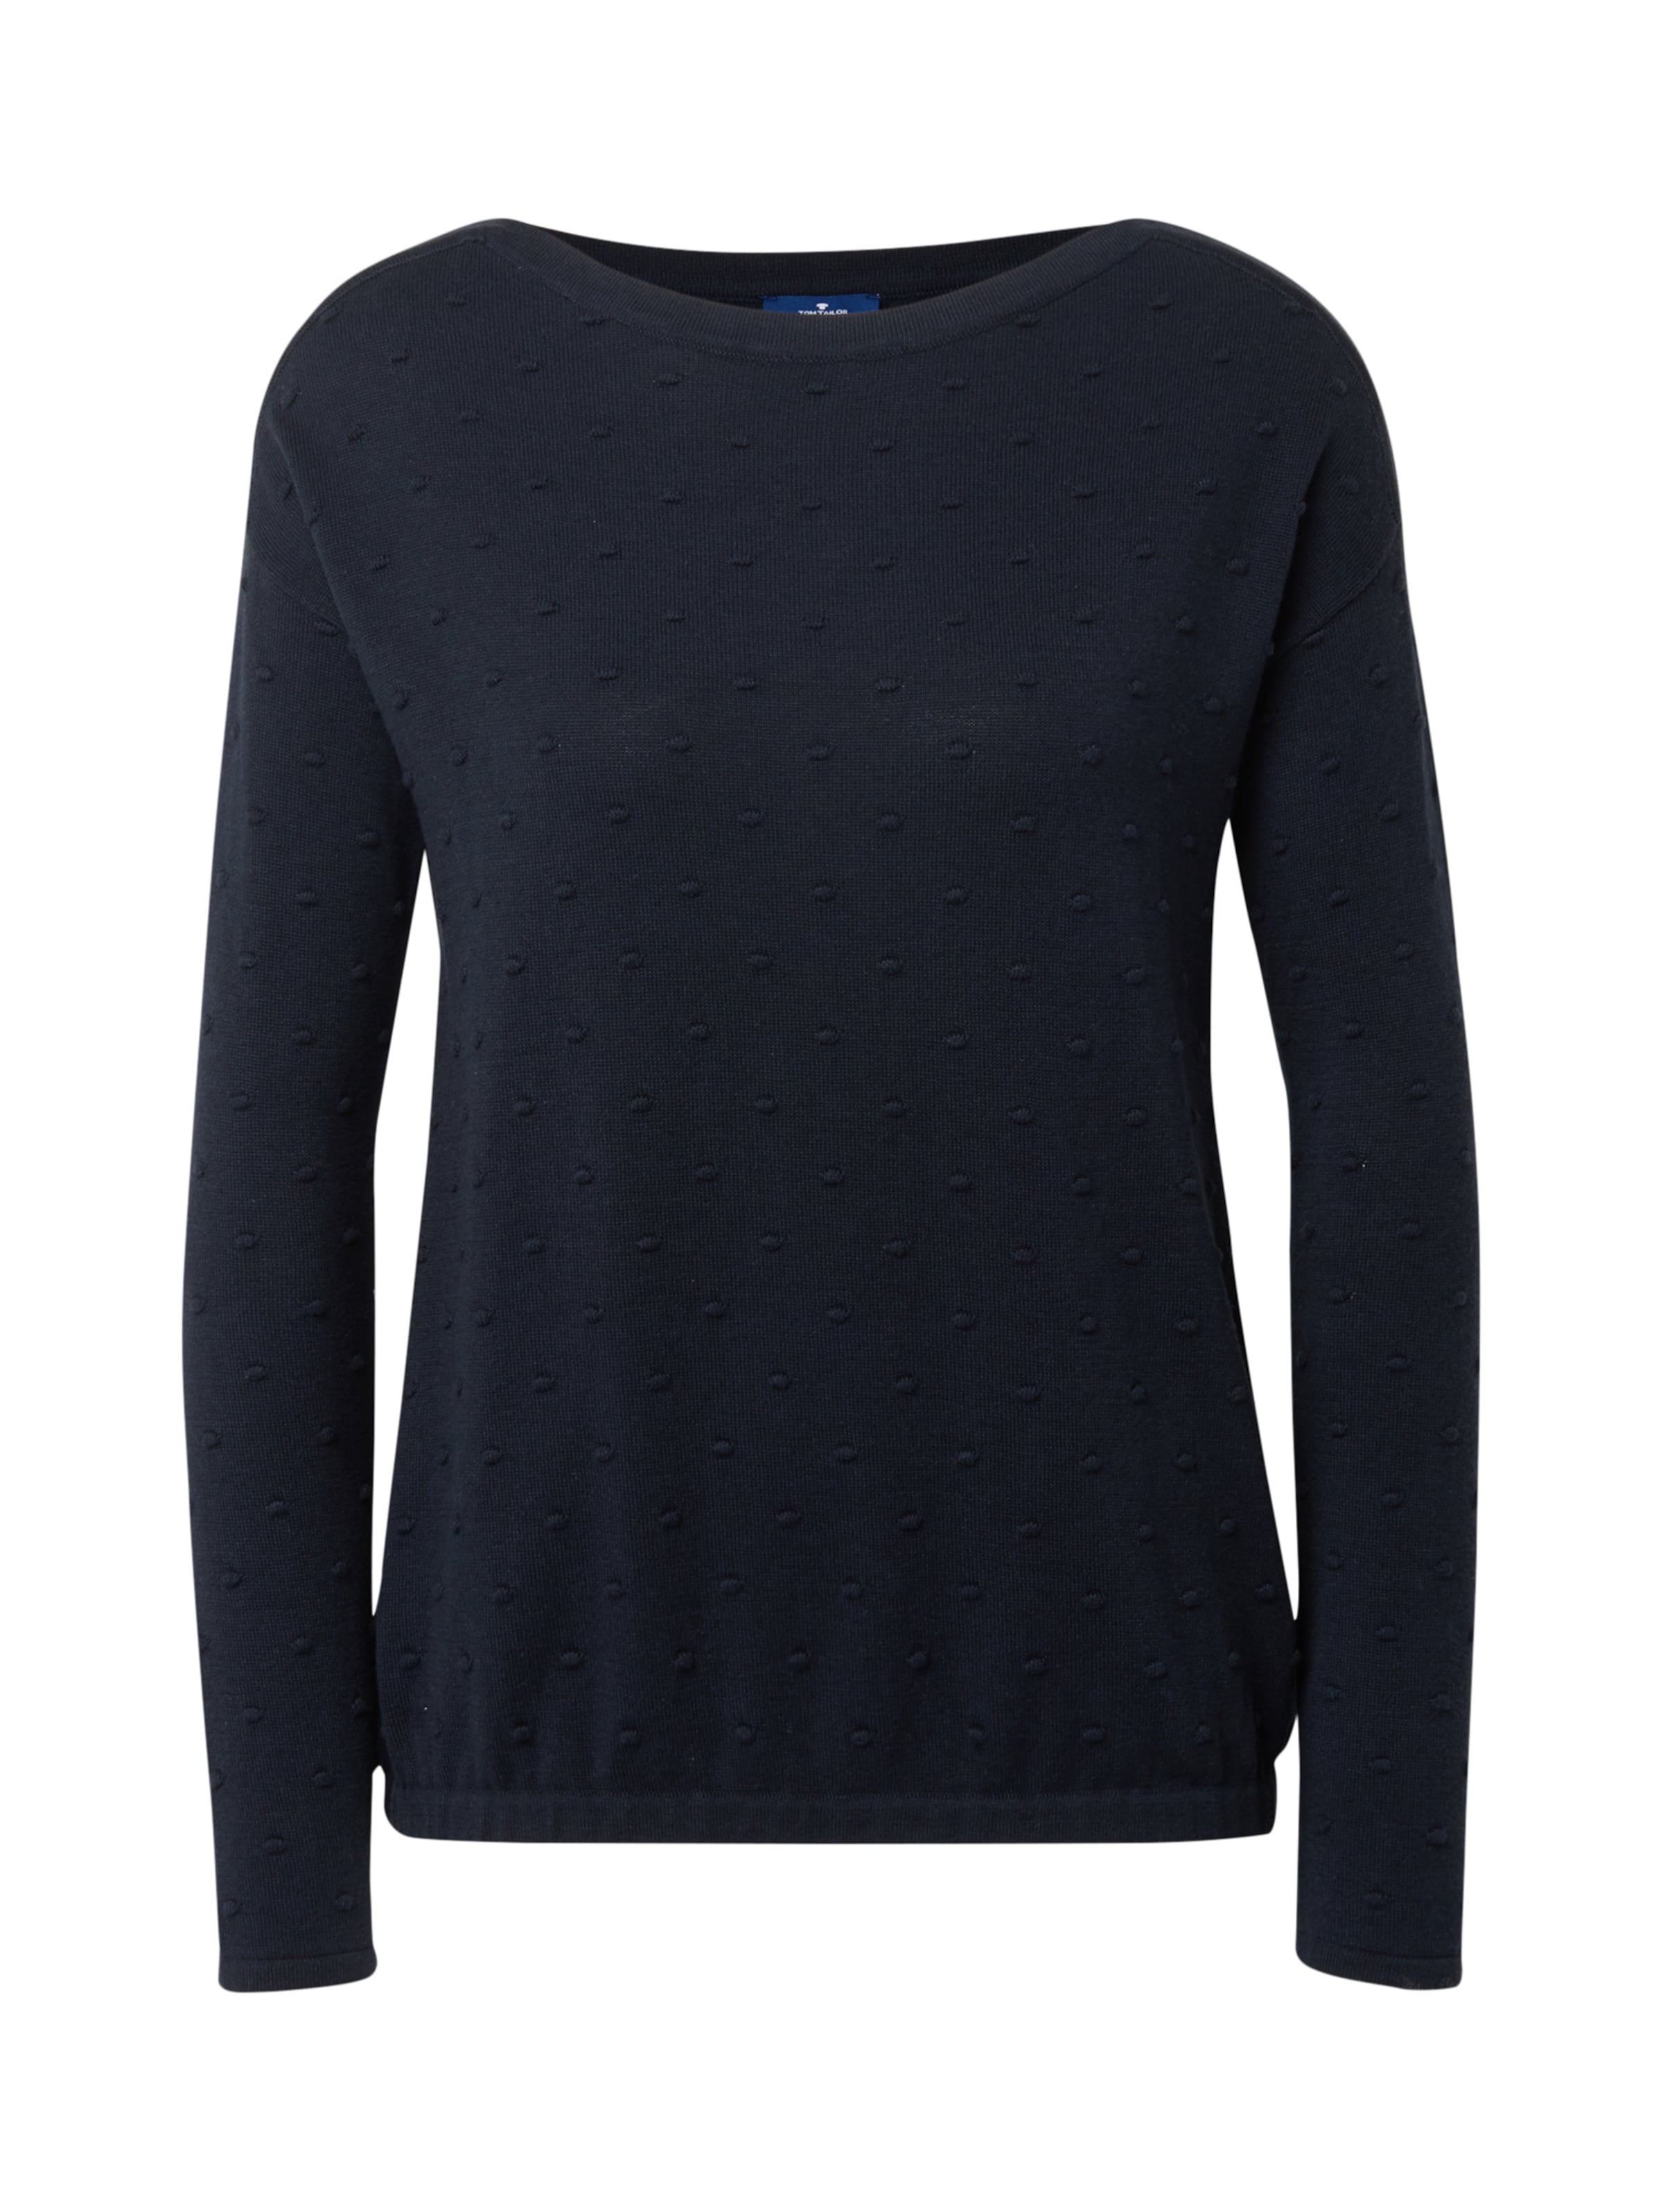 Tom In Tailor Tom Nachtblau Tailor Strickpullover H9IED2